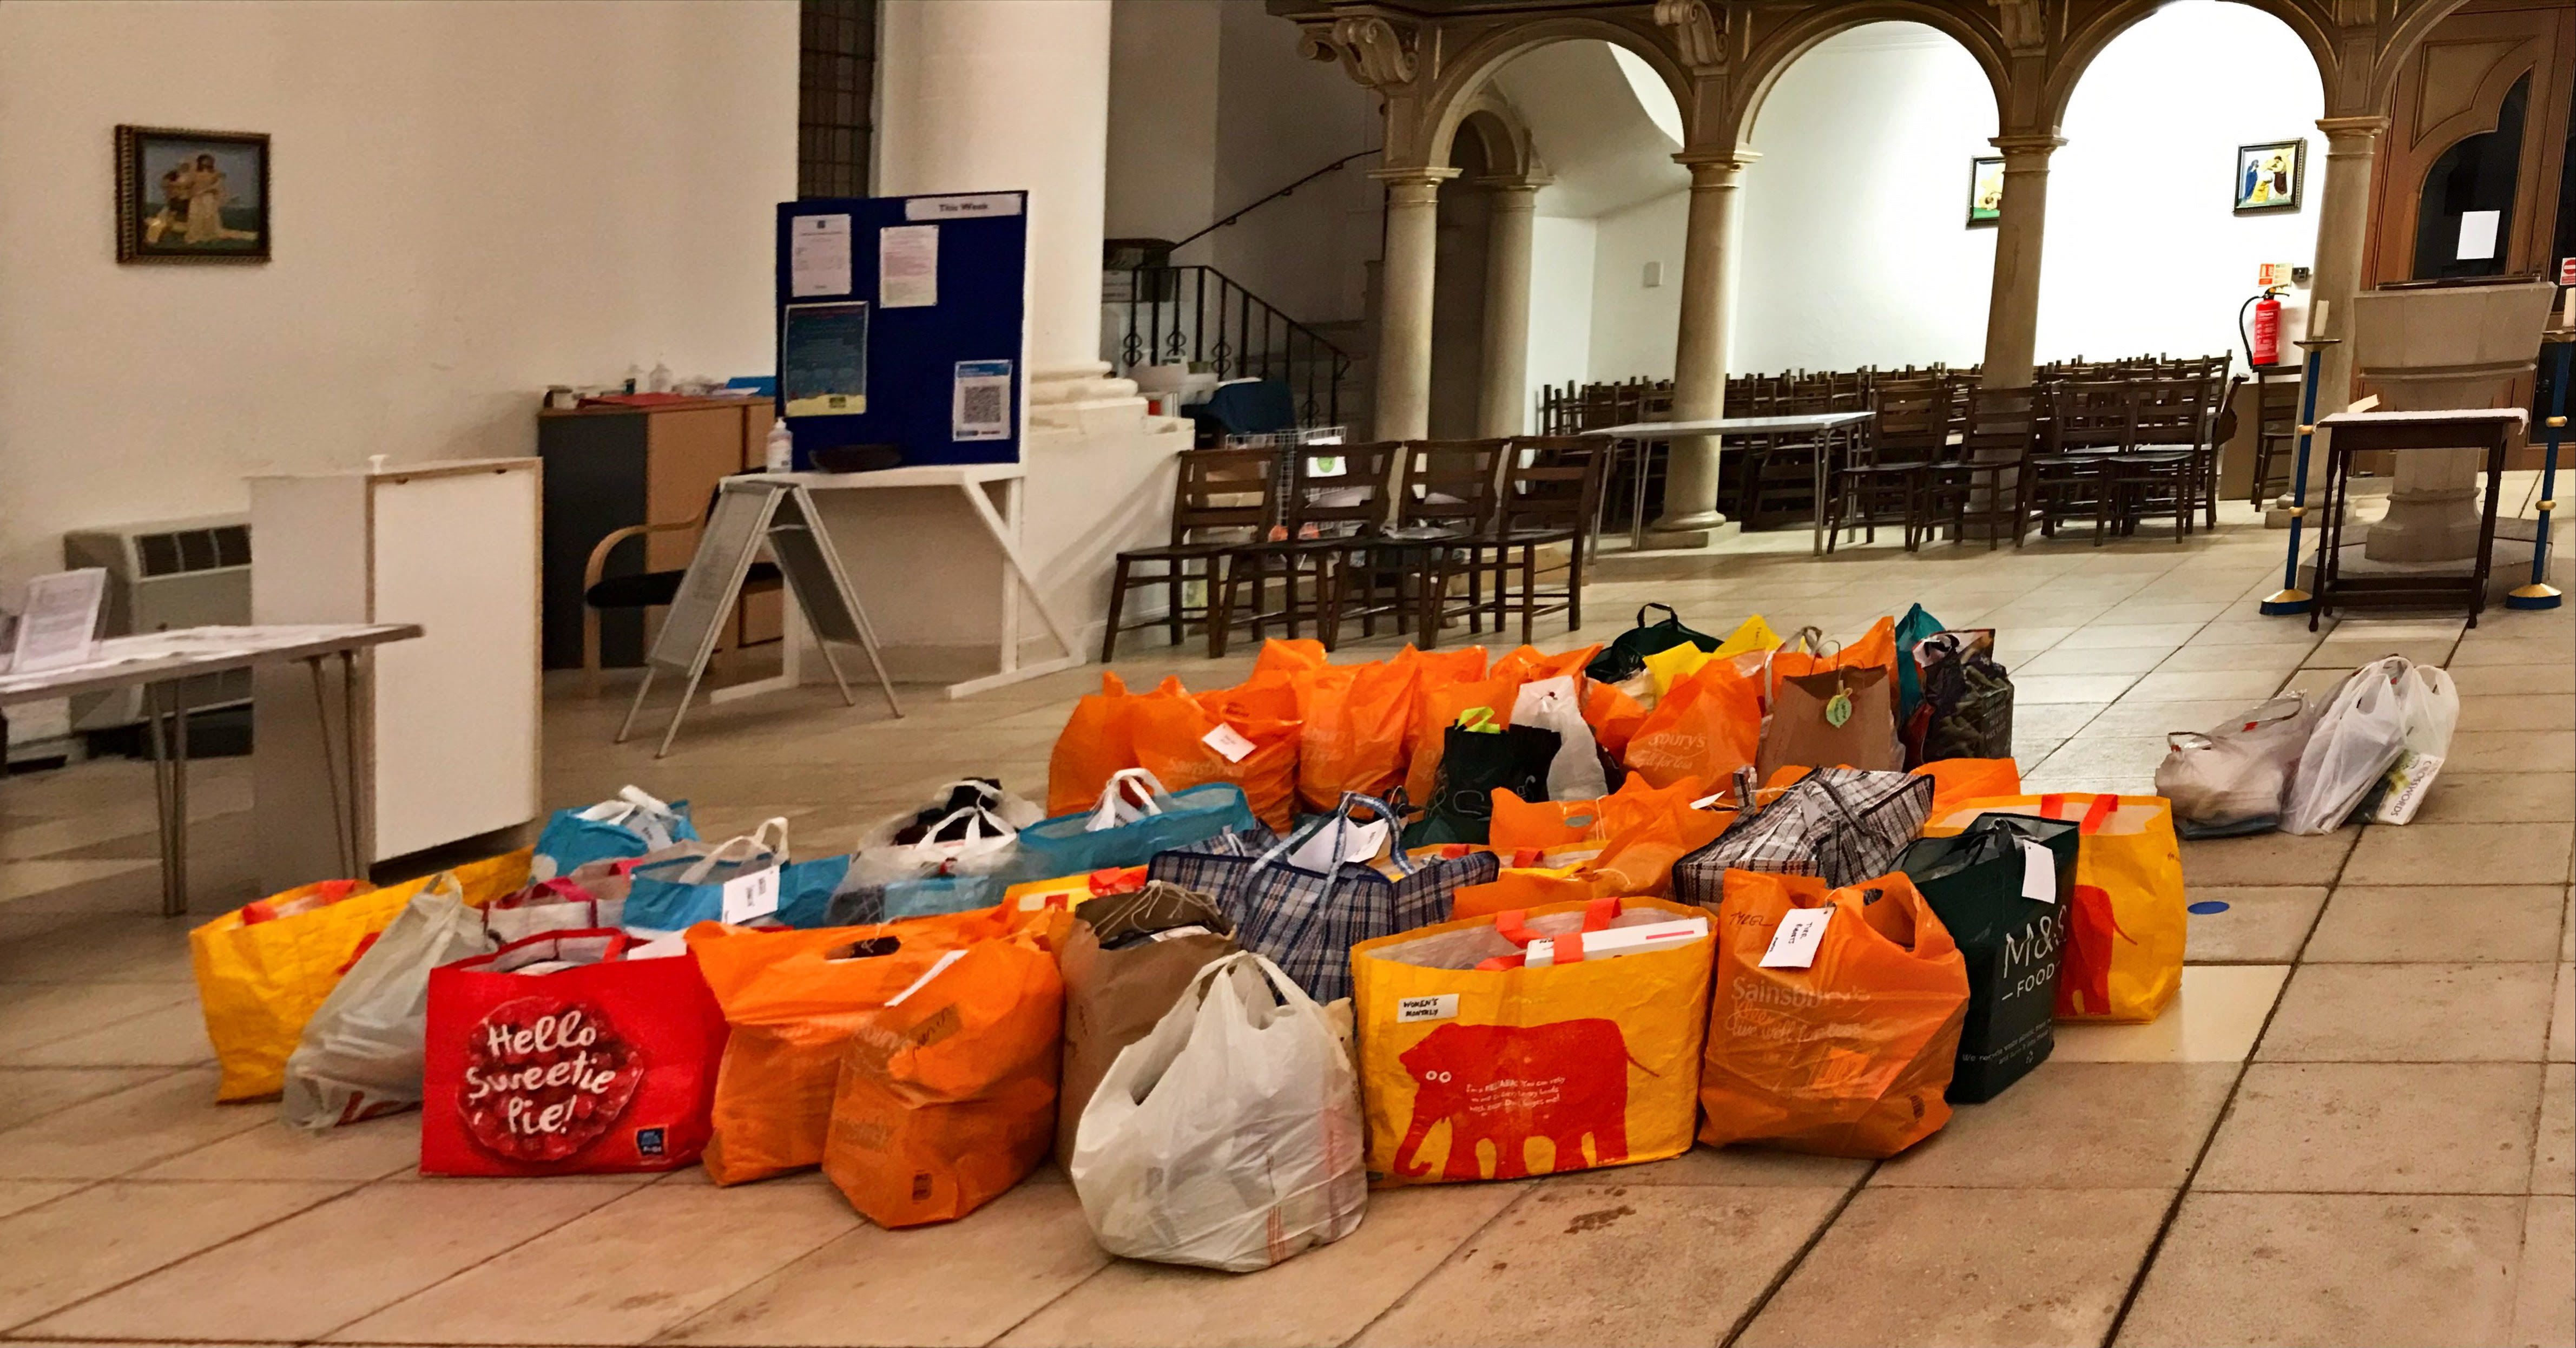 Lots of filled carrier bags piled near the back of church